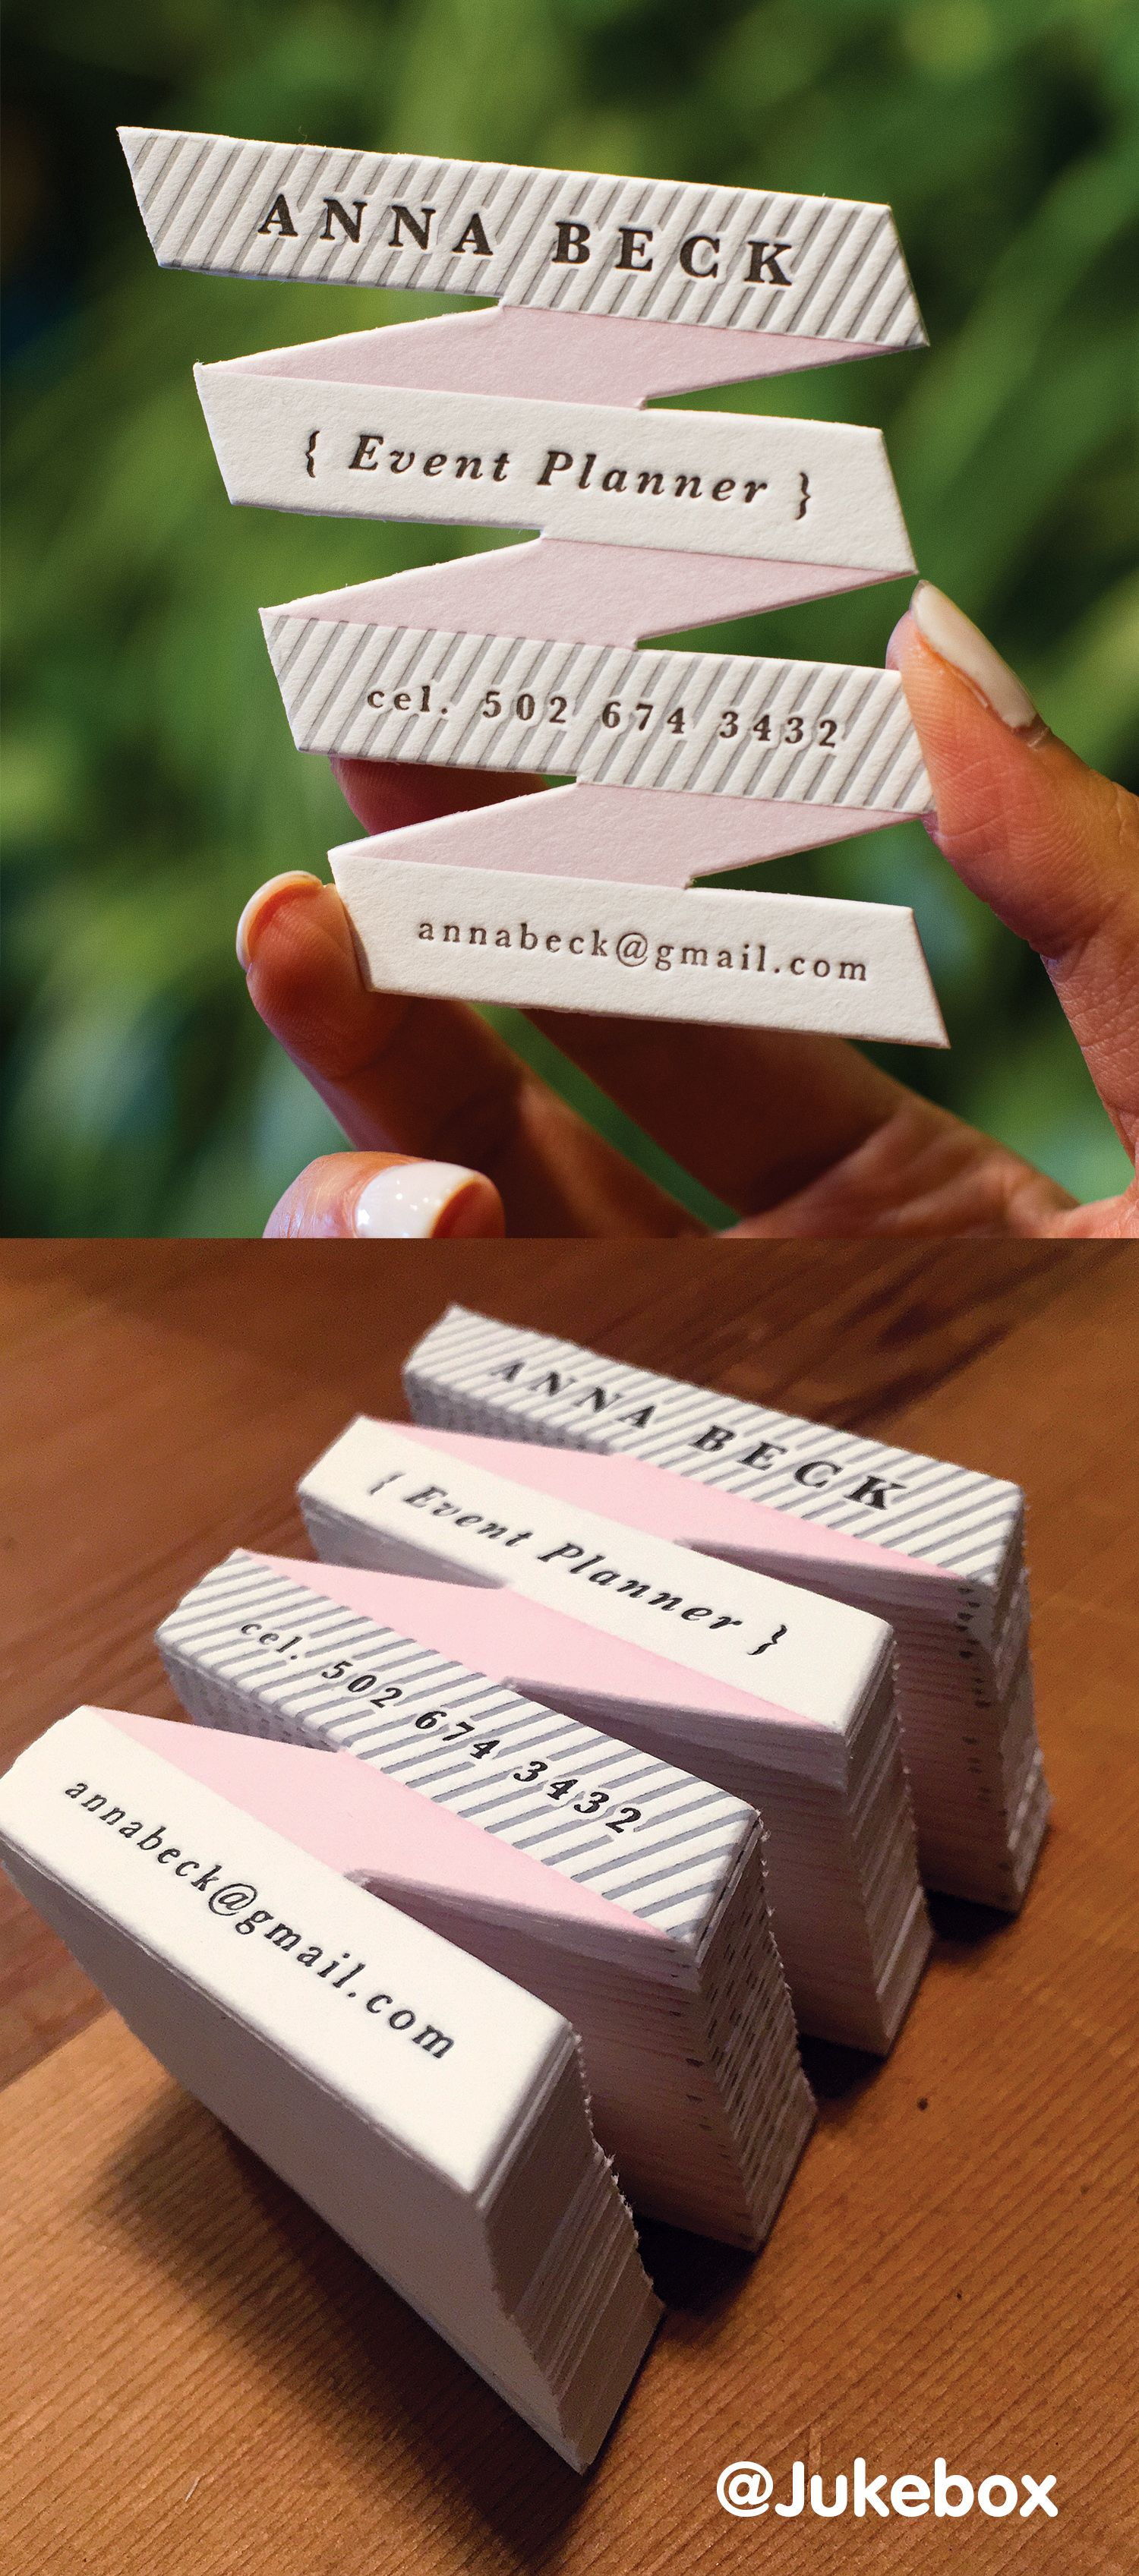 Letterpress business cards personalize your business cards with letterpress business cards personalize your business cards with a custom die cut shape reheart Image collections